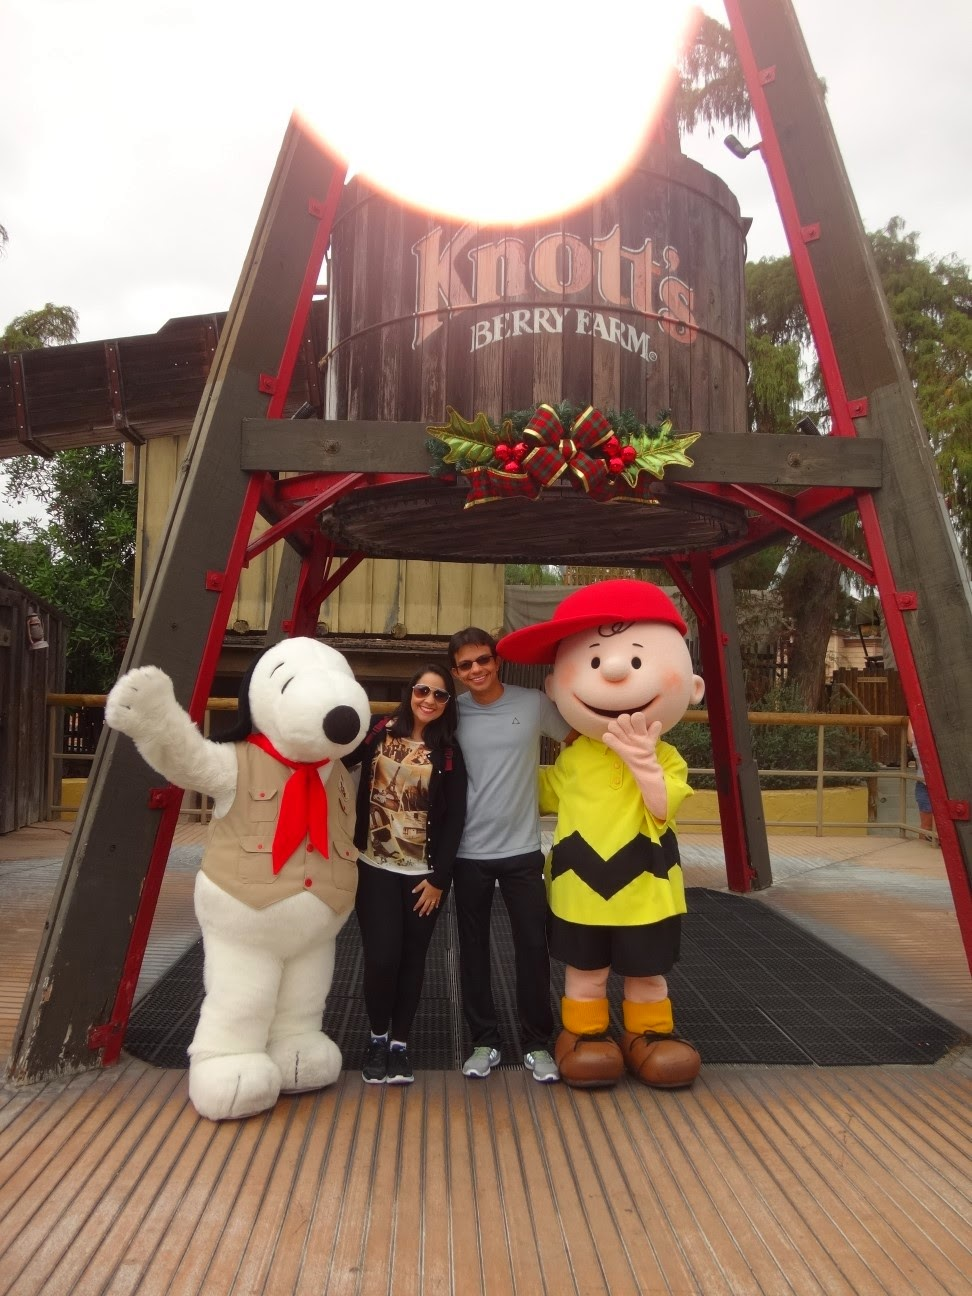 snoopy - knotts berry farm - los angeles